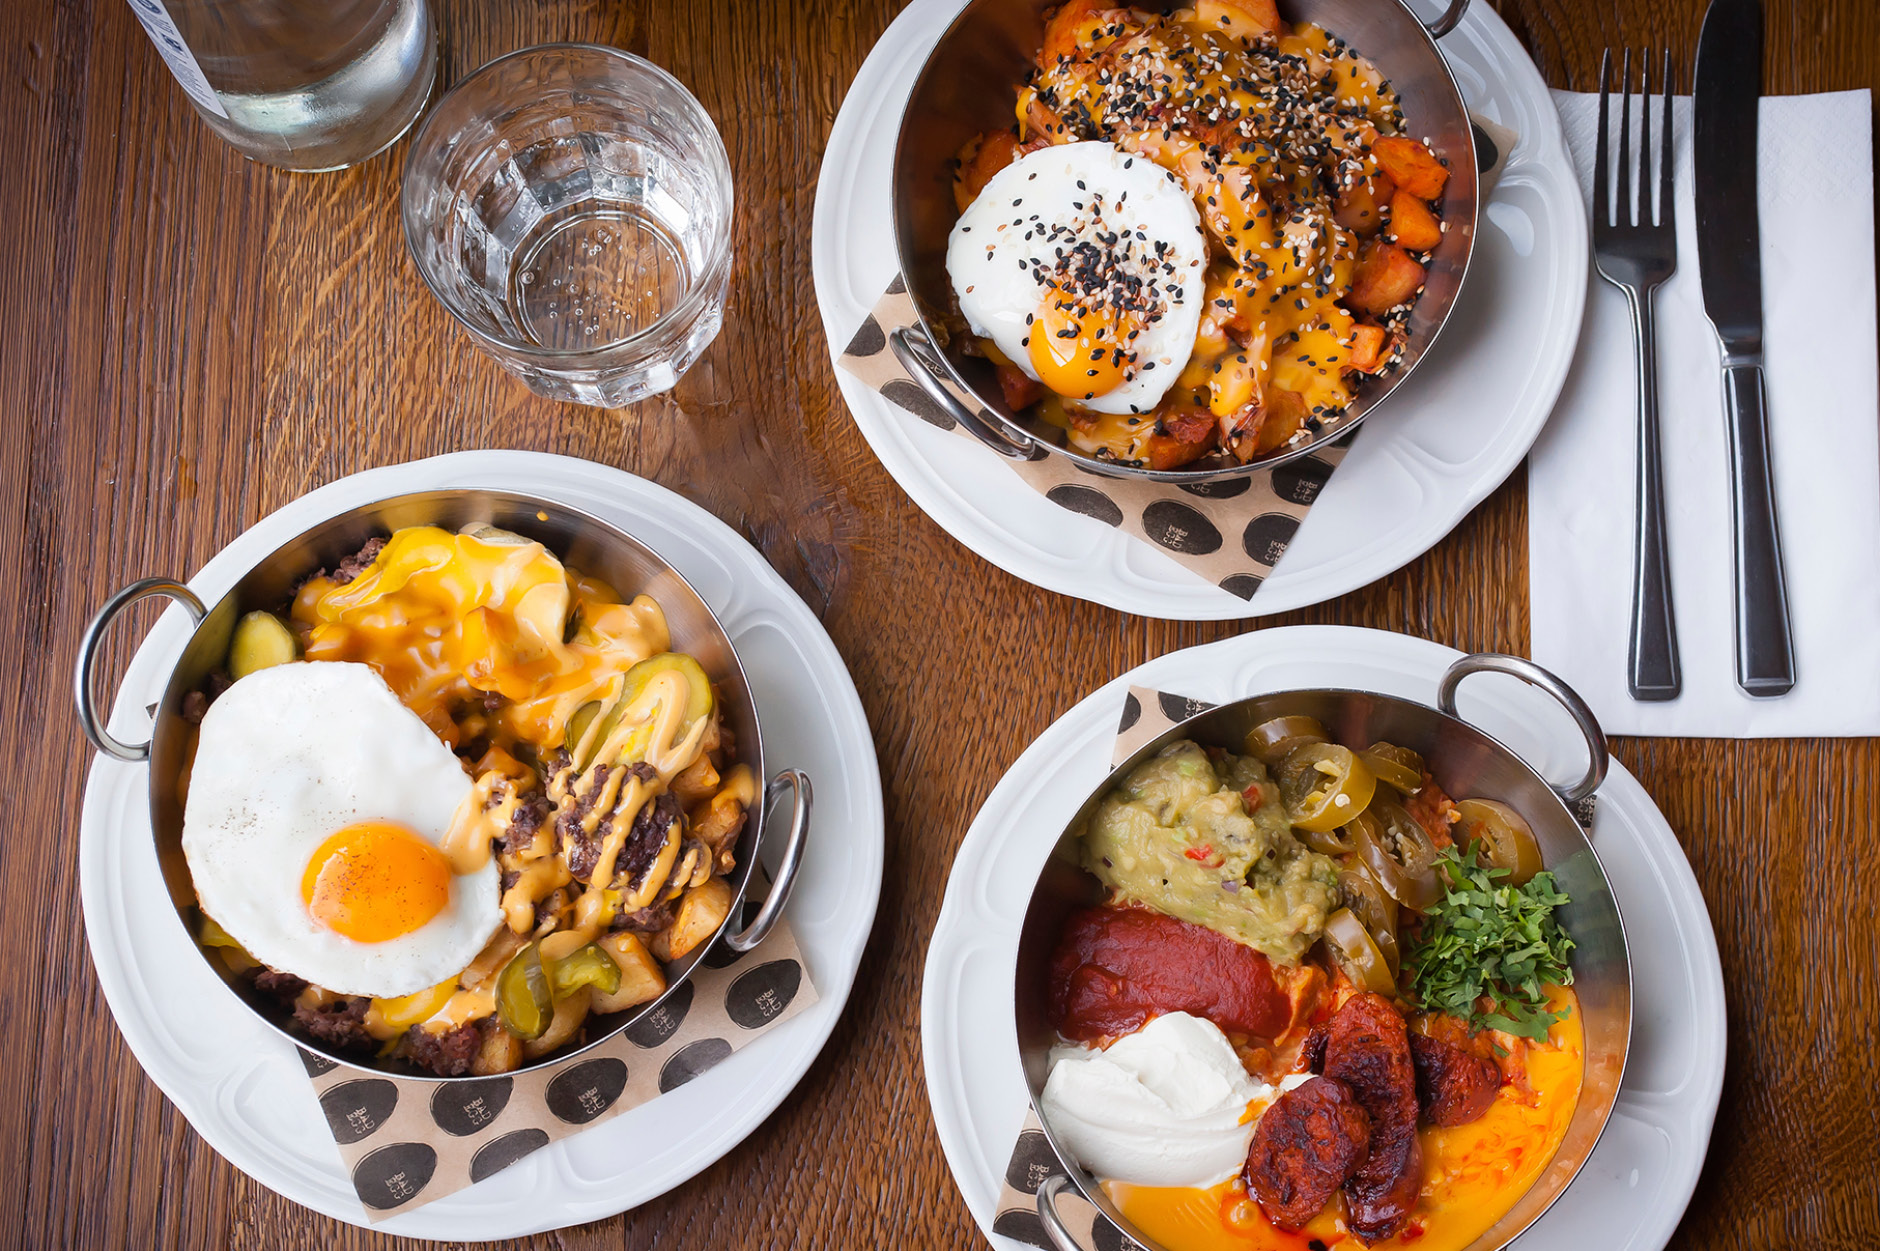 Bad_Egg_Moorgate_food_frunch_brunch_multiple_1